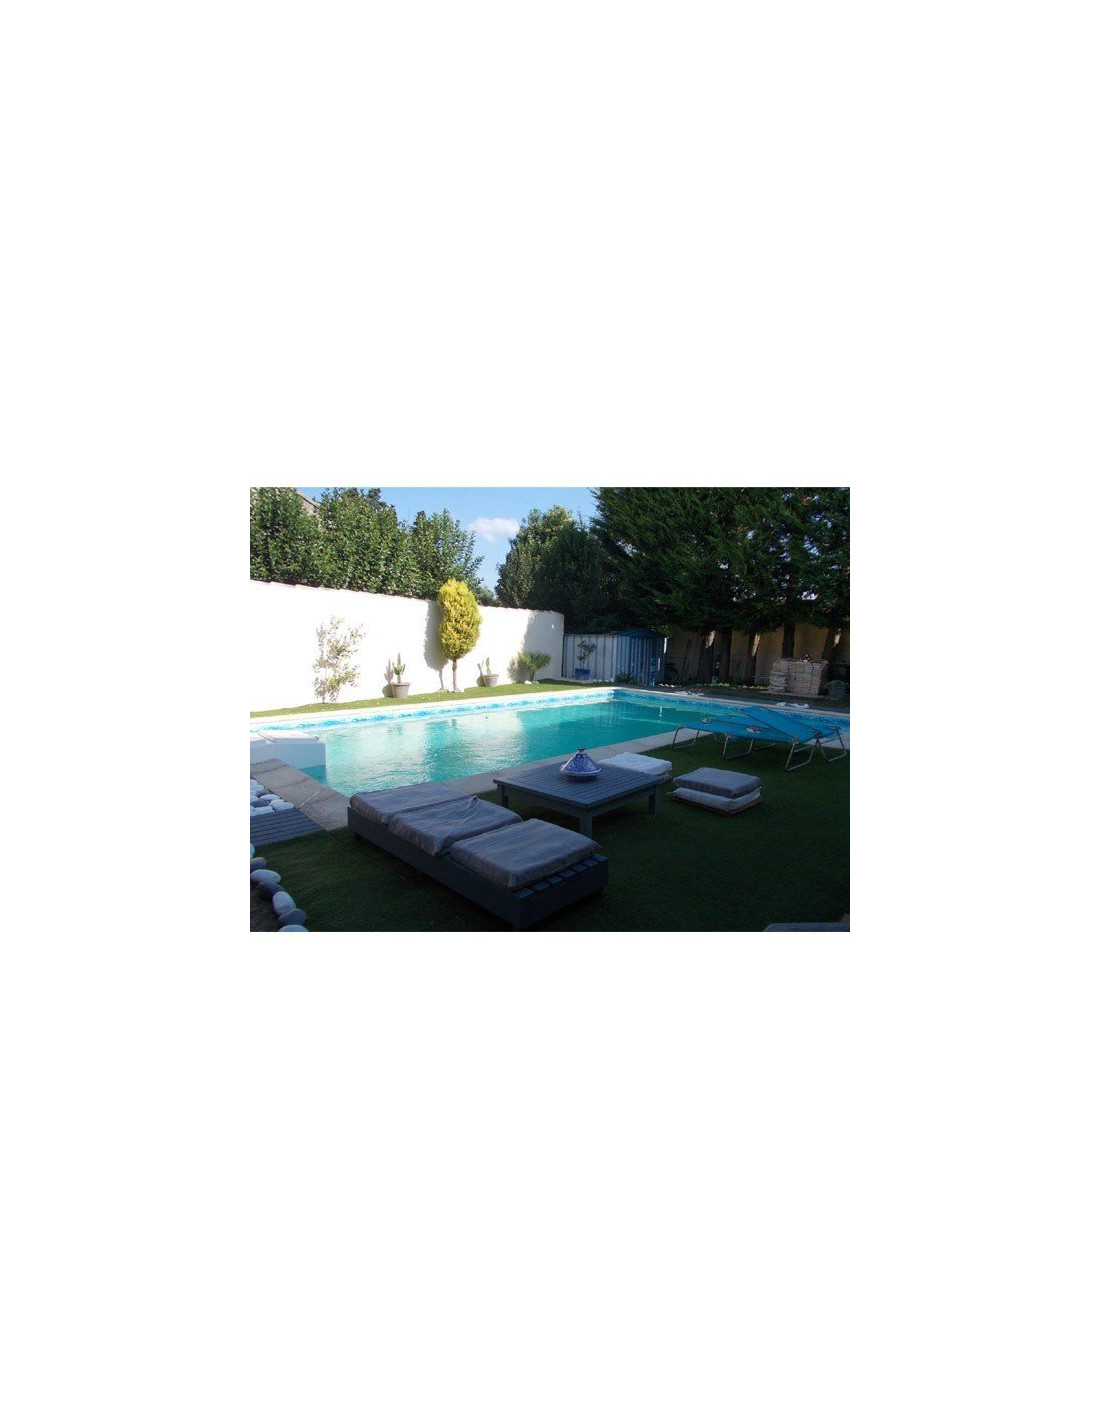 Kit piscine enterr e modulo for Kit piscine enterree